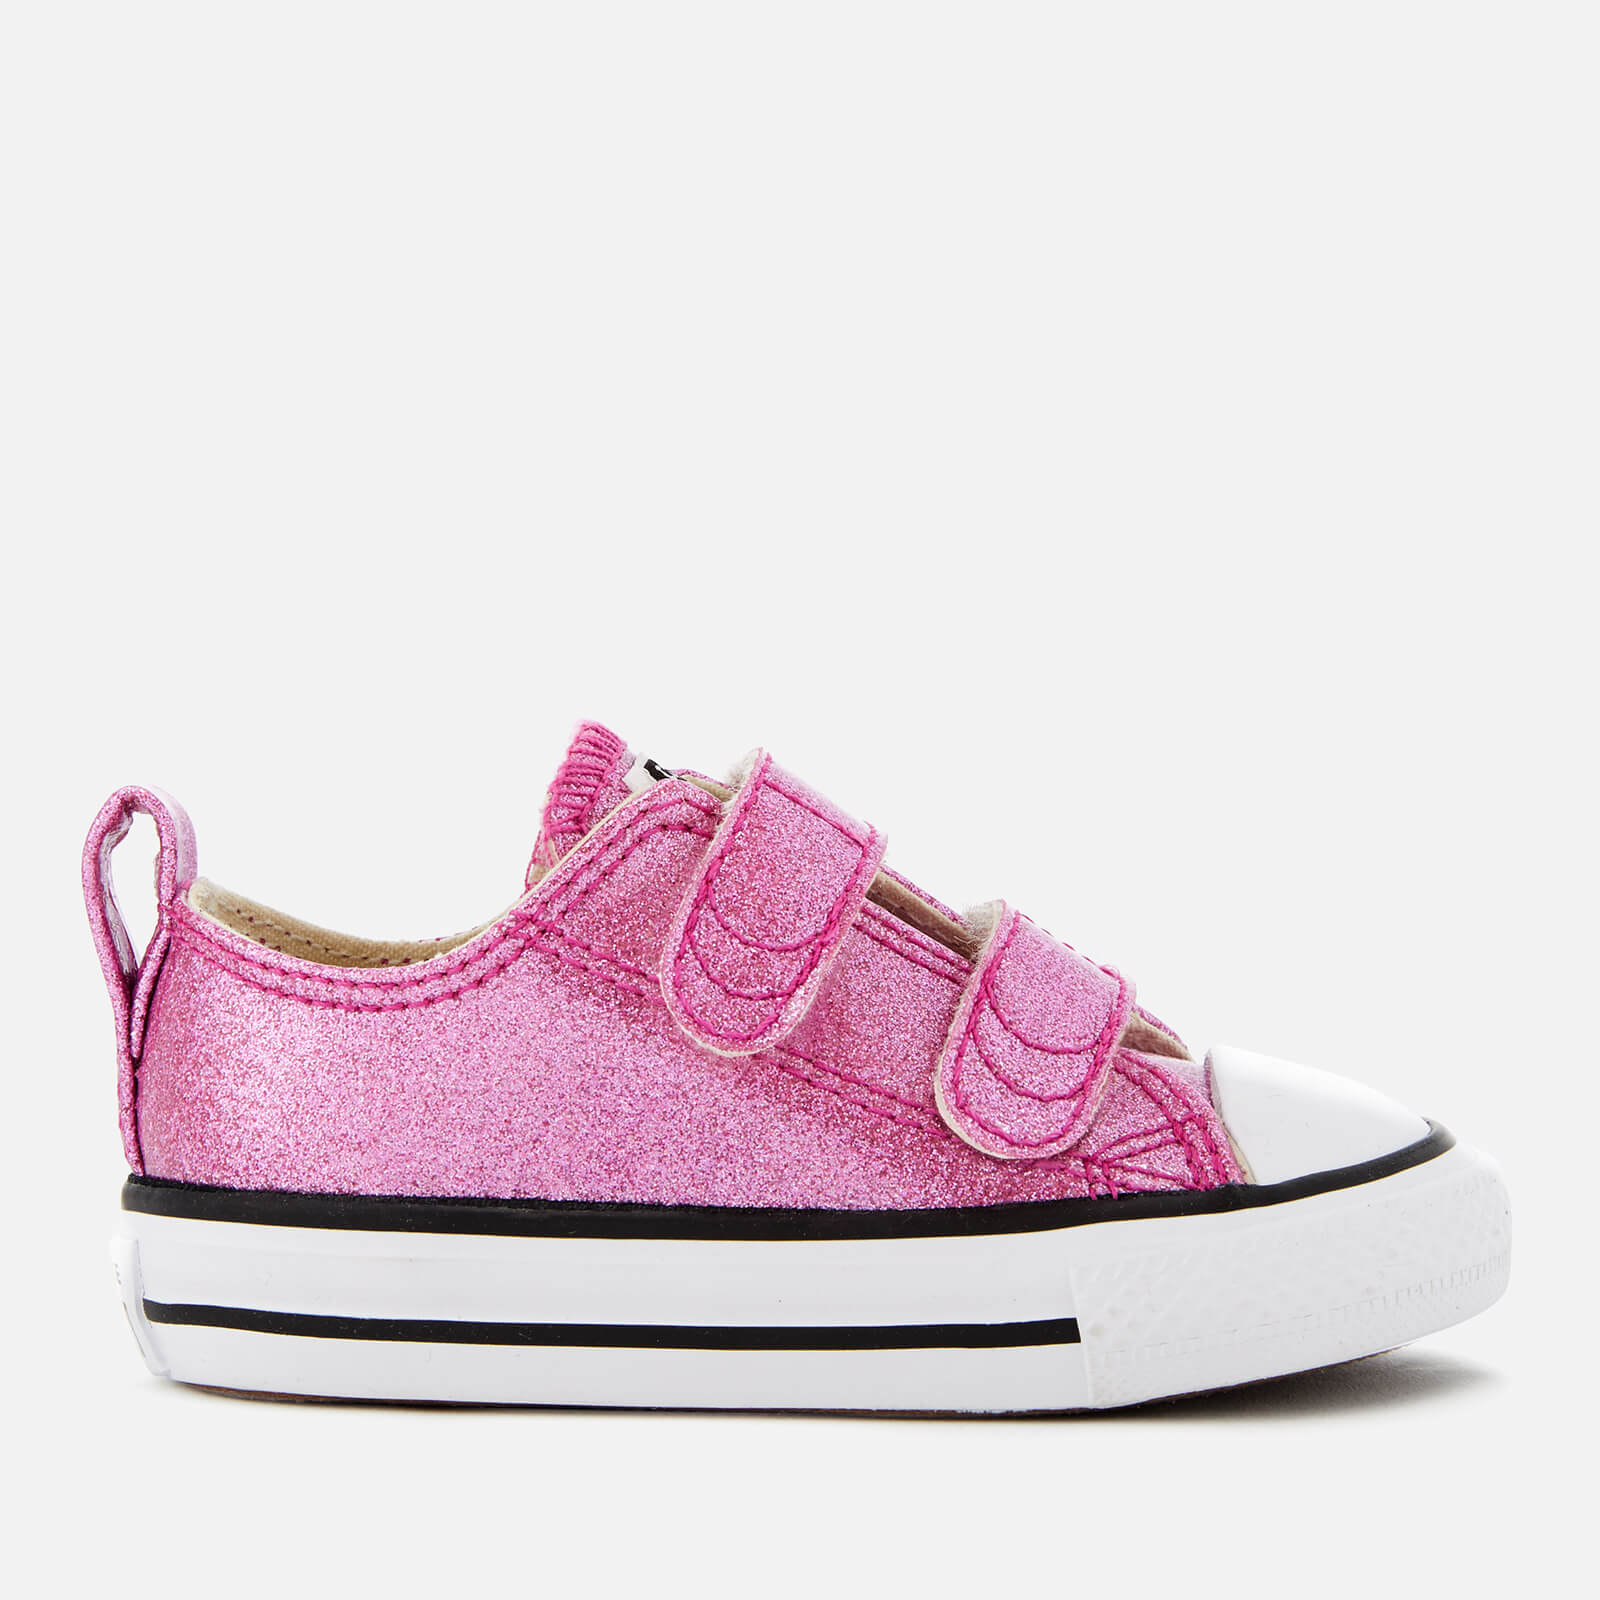 Converse Toddlers' Chuck Taylor All Star 2V Ox Trainers Bright VioletNaturalWhite